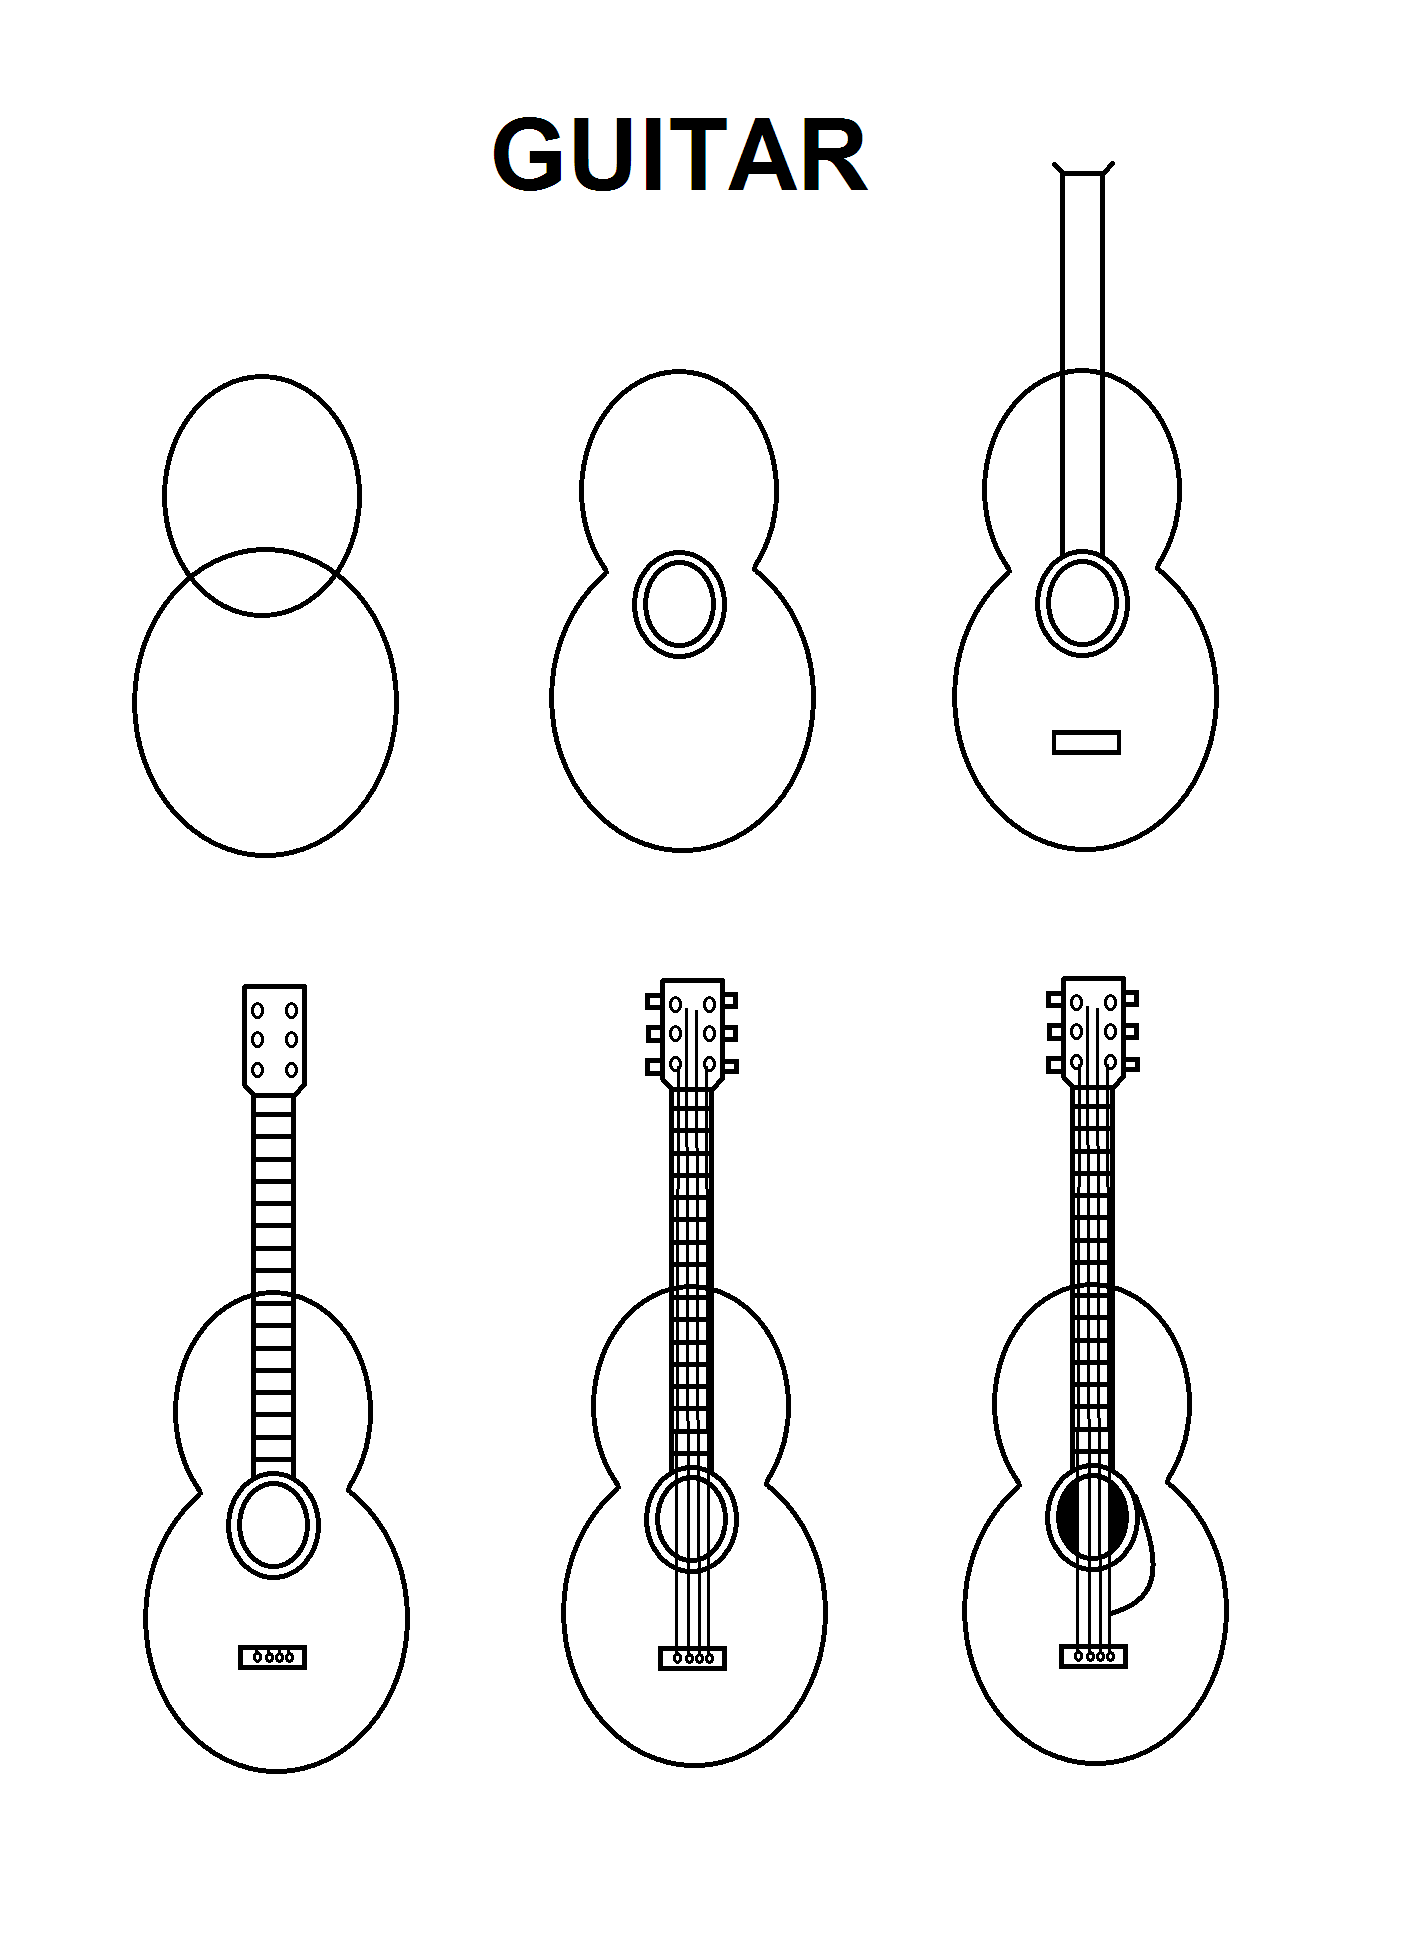 how to draw a electric guitar step by step how to draw an electric guitar step by step drawing a to by step how draw guitar step electric